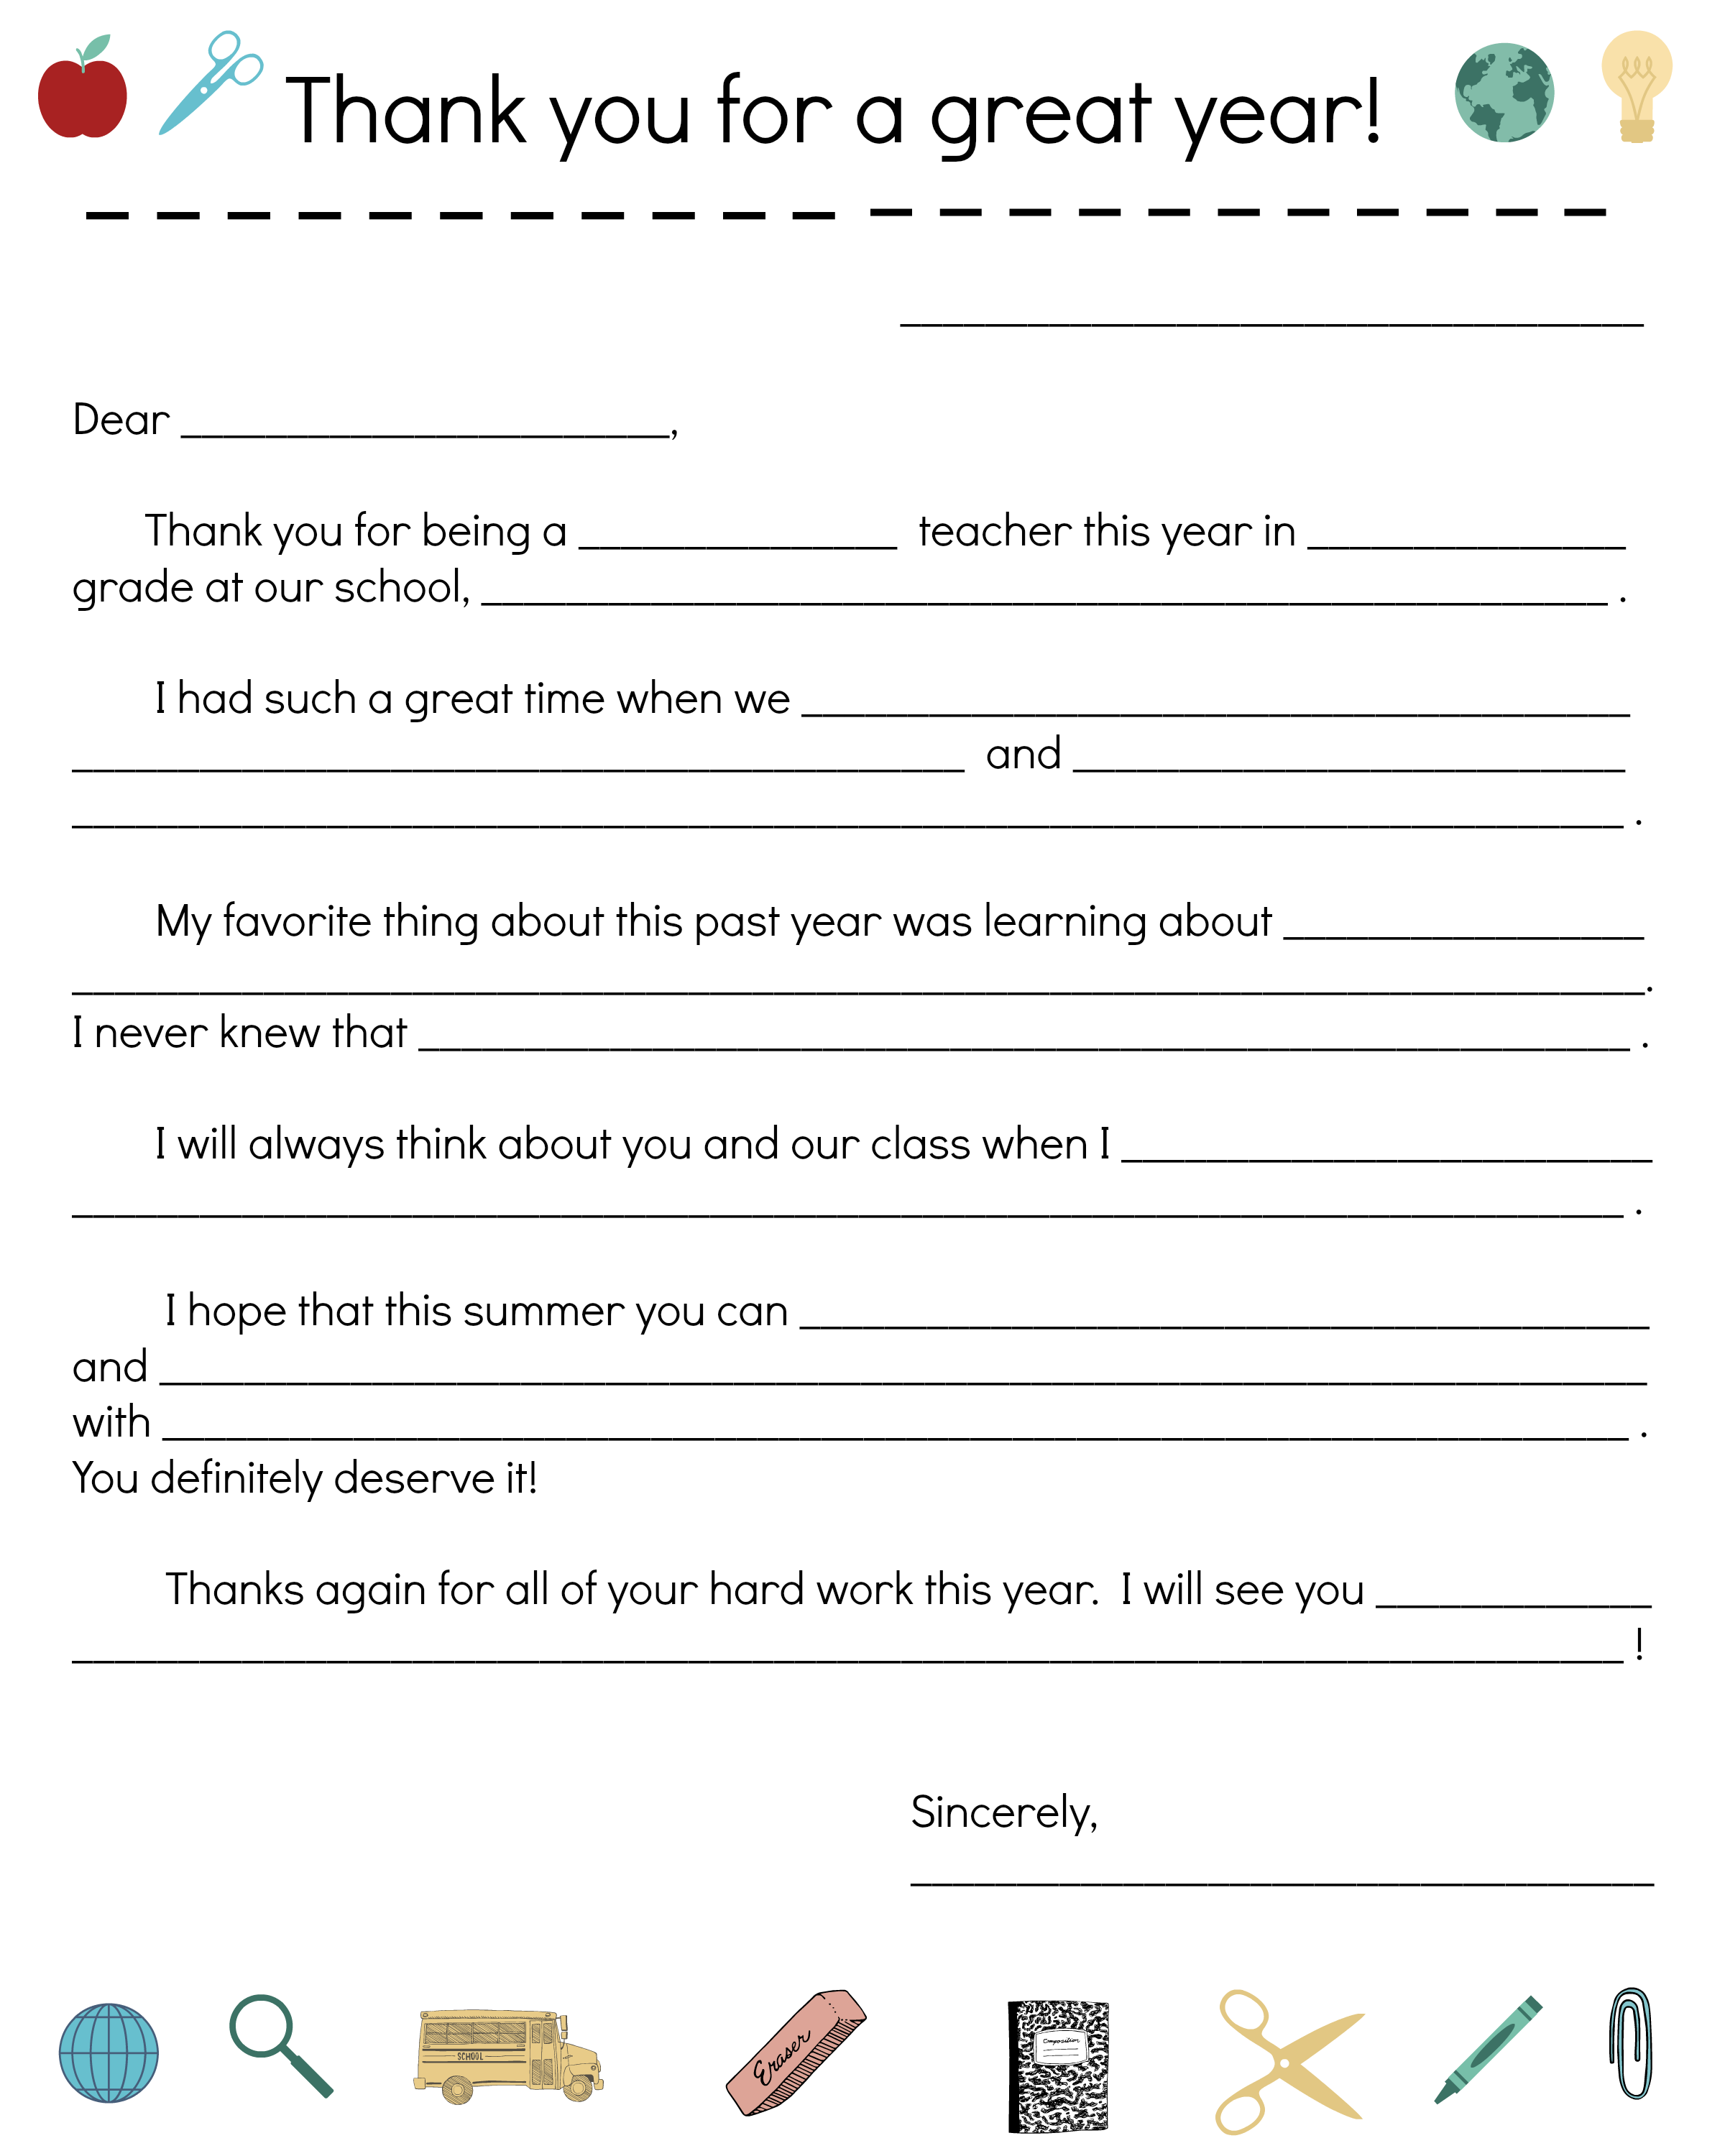 Say thanks to teachers with a fill in note from your child say thanks to teachers with a fill in note from your child scholastic parents expocarfo Images